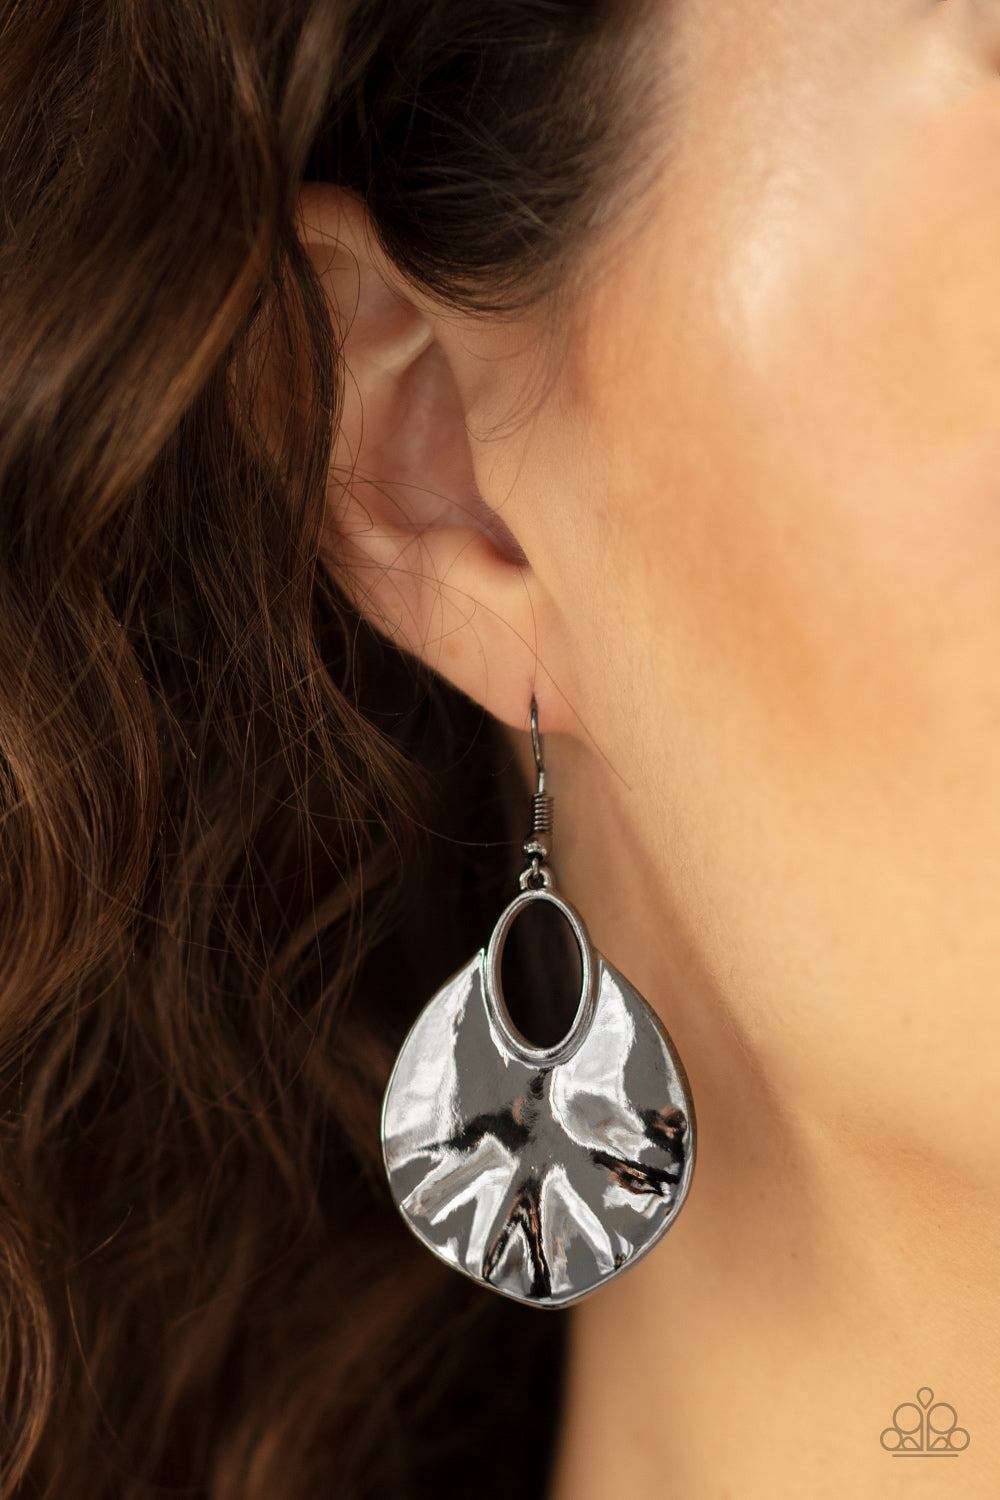 Paparazzi Jewelry & Accessories - Ruffled Refinery - Black/Gunmetal Earrings. Bling By Titia Boutique